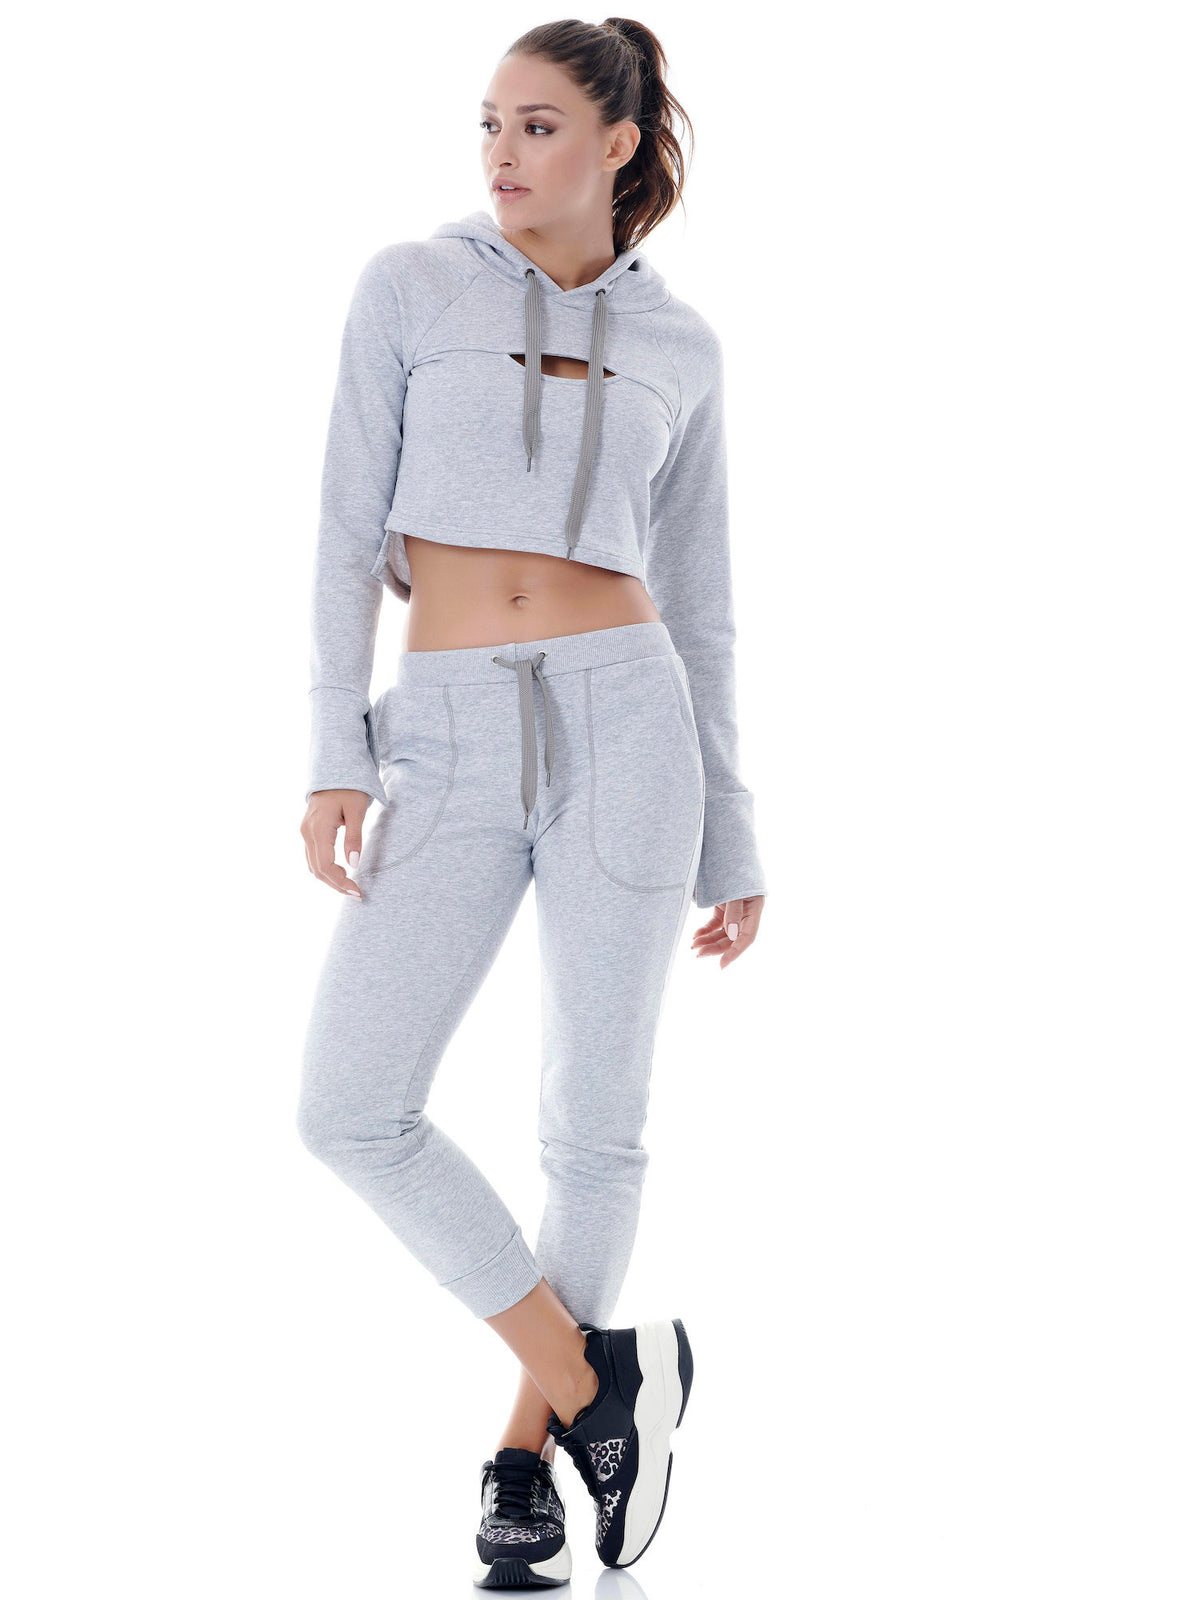 COOL-DOWN CROPPED TRACK PANTS - SPORT GREY